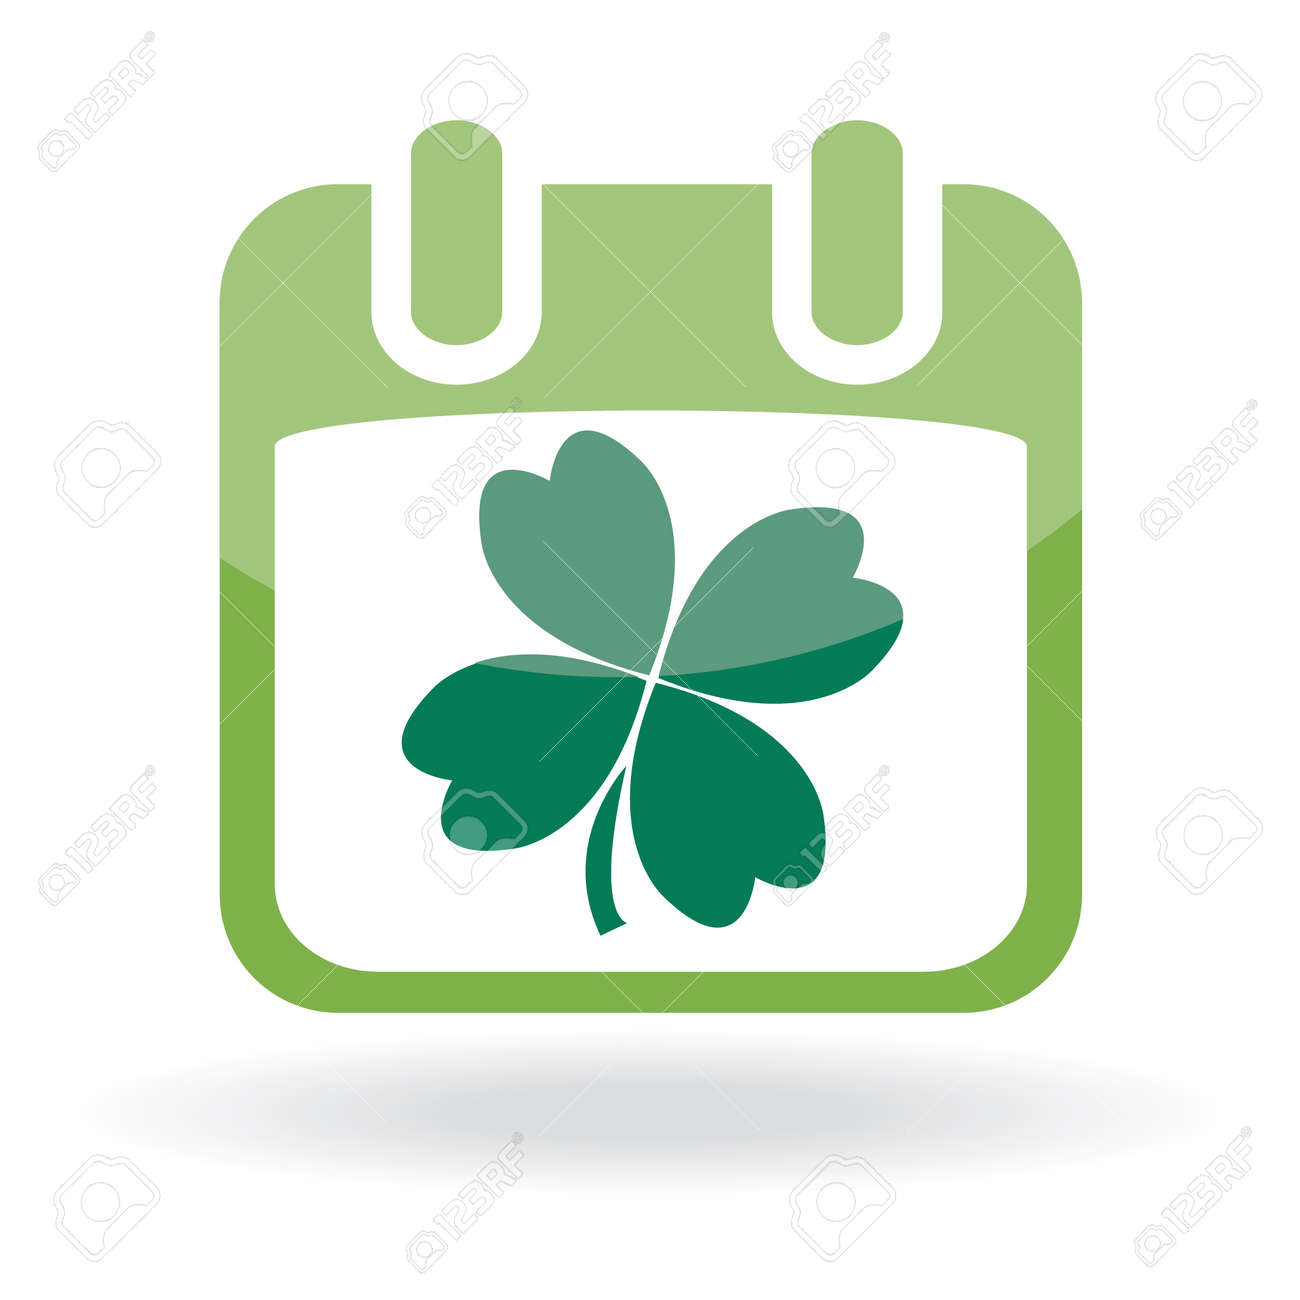 Calendar with clover leaf. St. Patrick's day icon. Stock Vector - 6531809